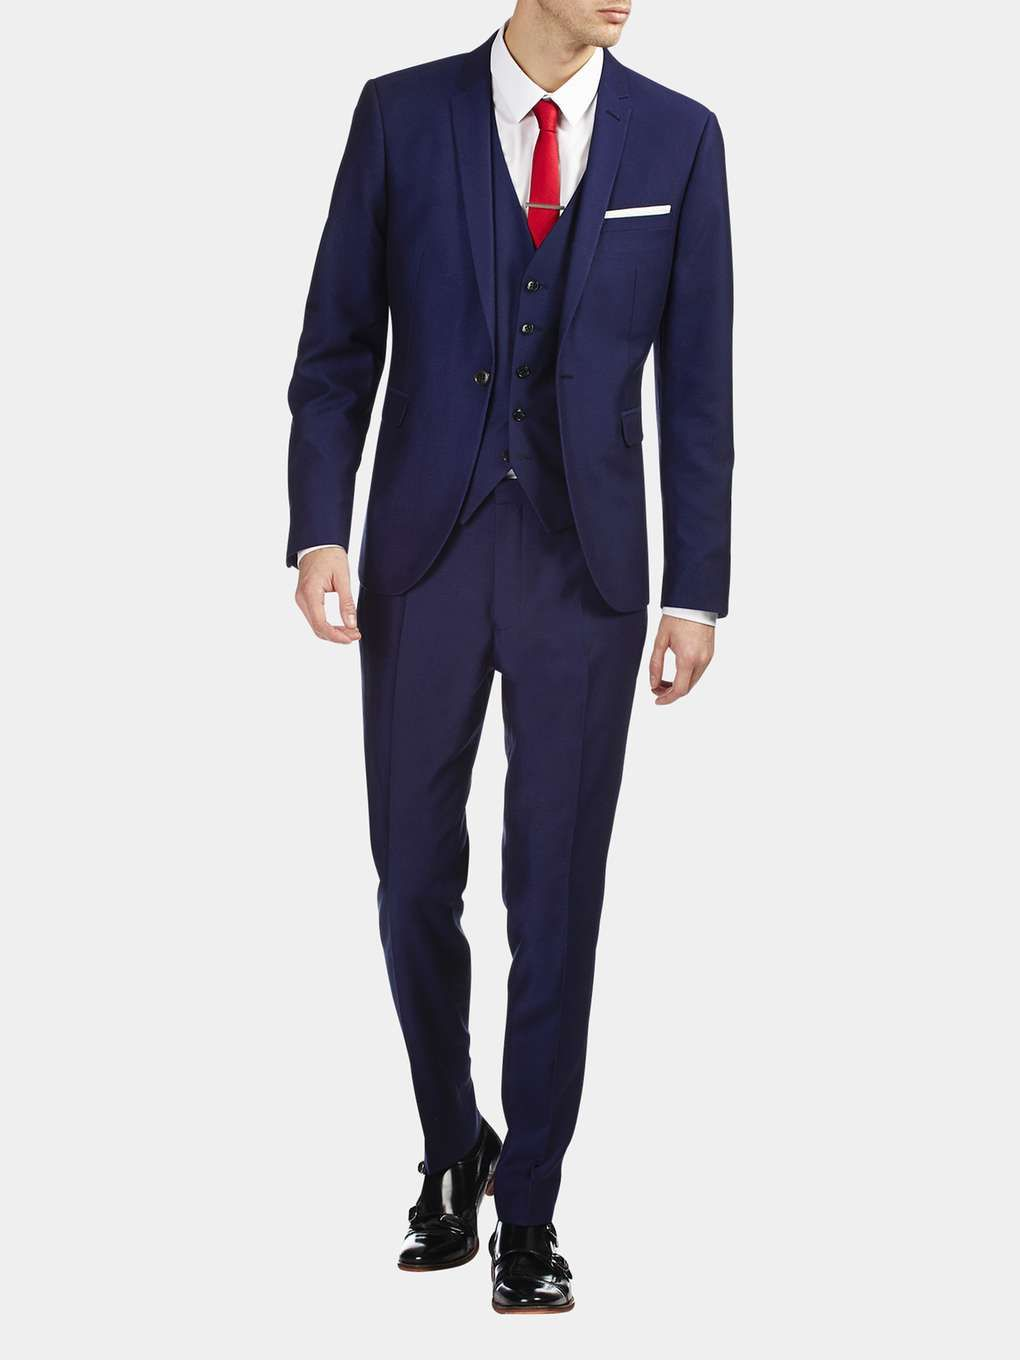 Royal Blue Texture Skinny Fit Suit Jacket - Burton | Hols ...